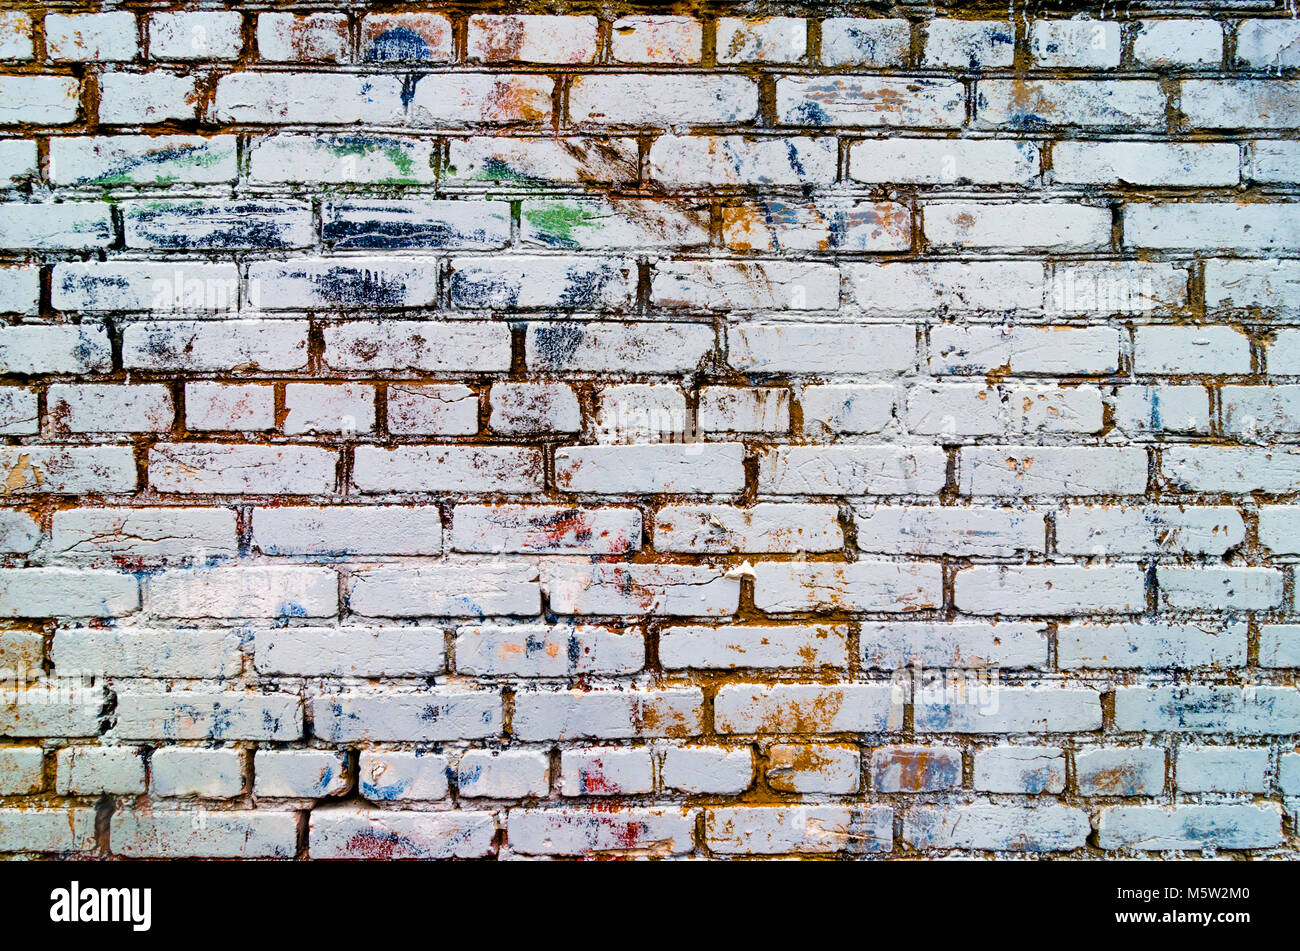 Abstract Colorful Brick Wall Texture And Background